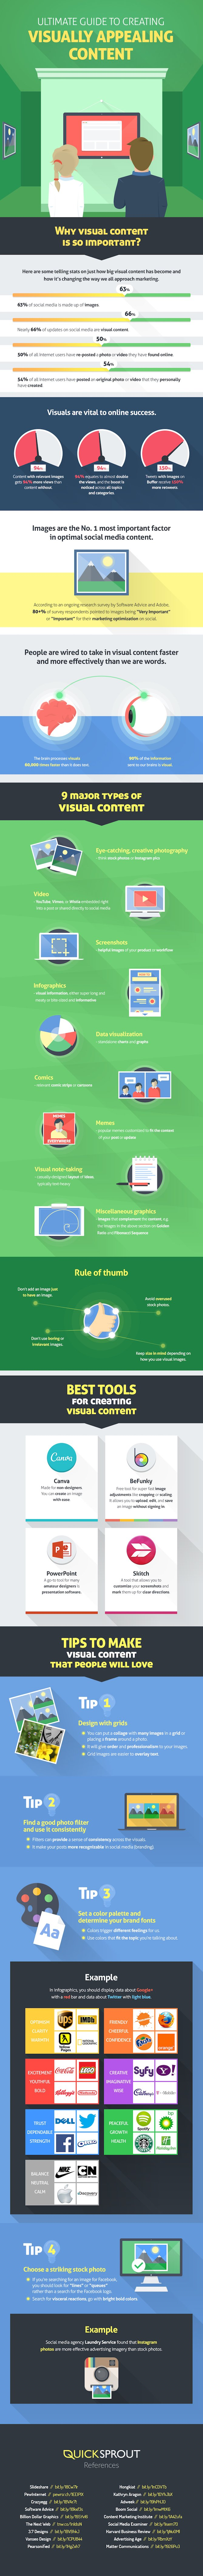 creating-visually-appealing-content-infographic